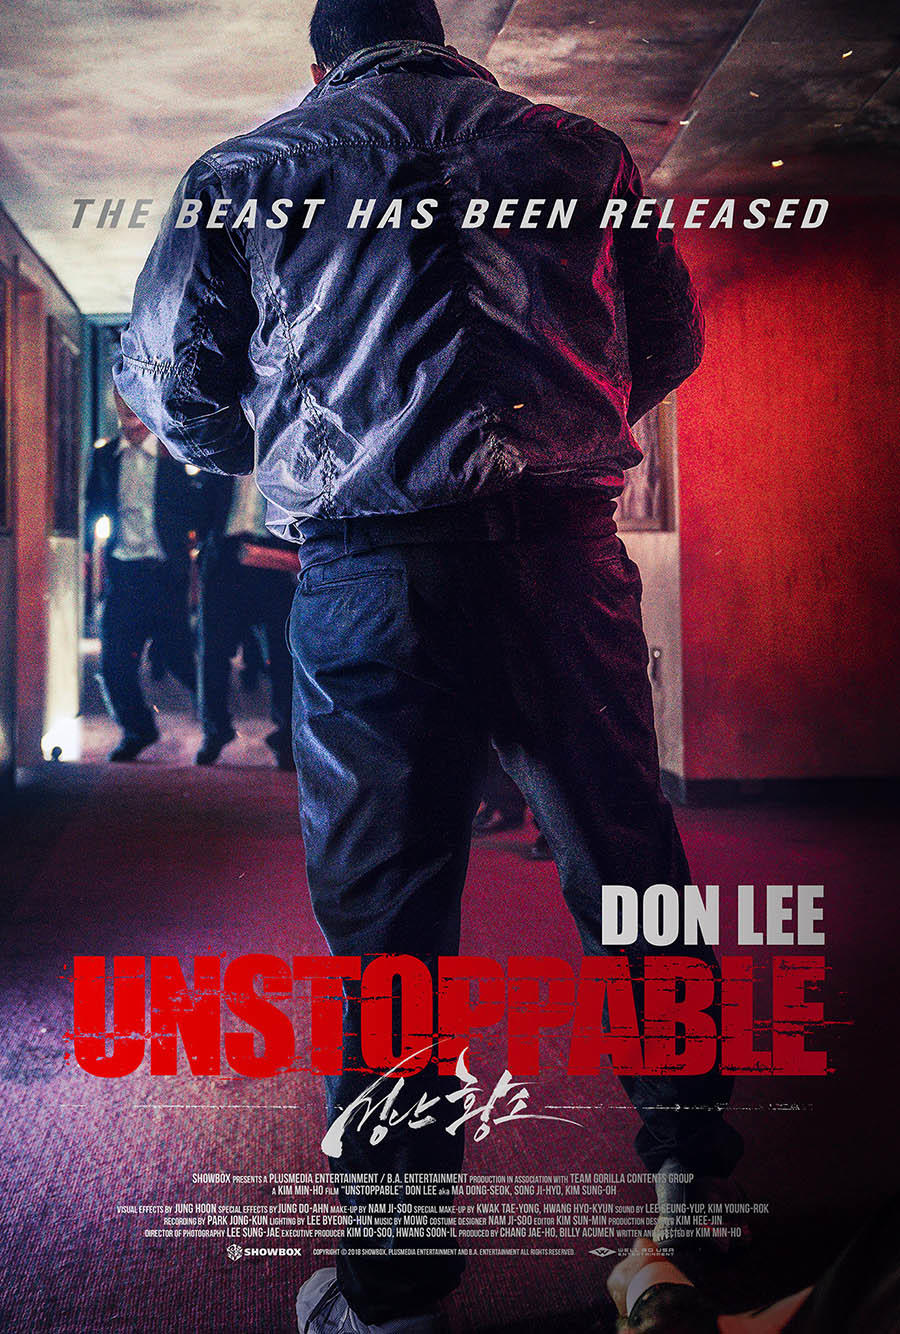 Unstoppable poster art